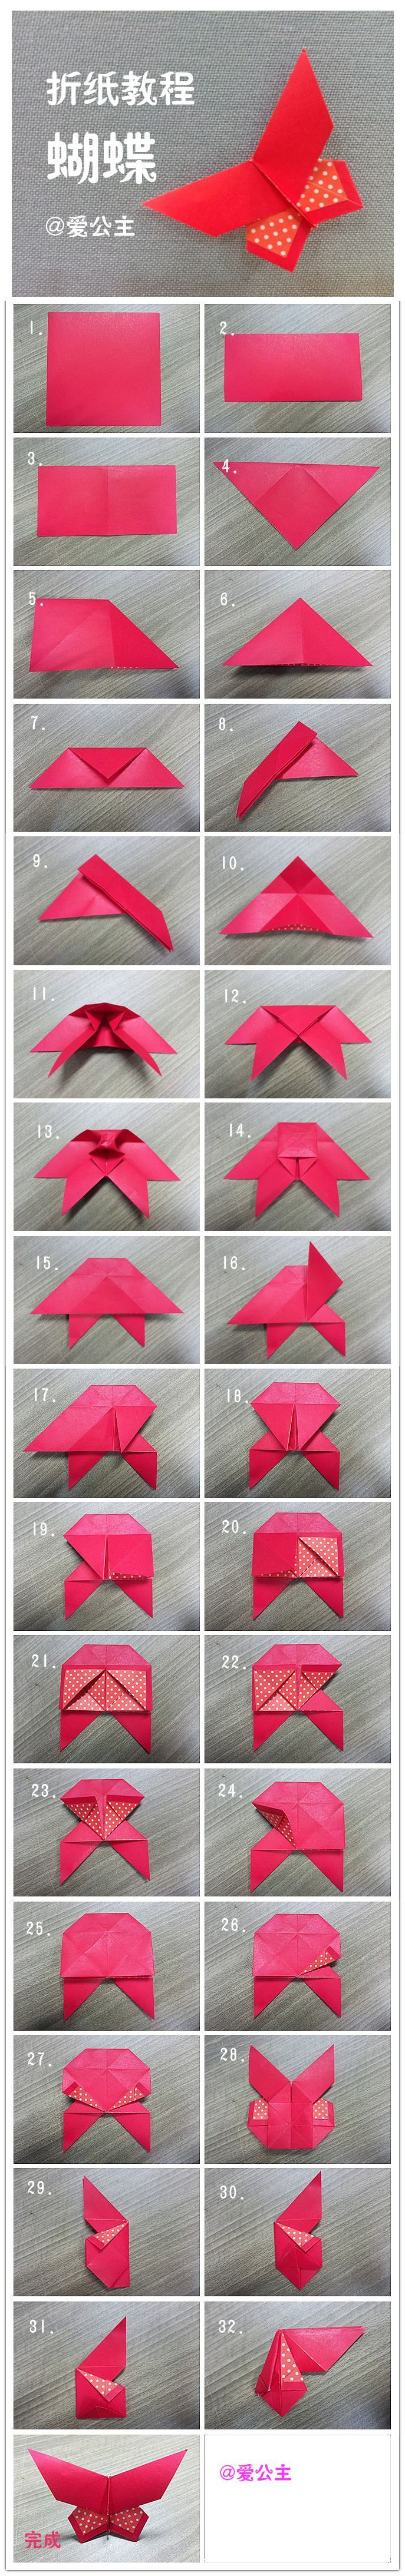 die besten 17 ideen zu origami schmetterling auf pinterest origami papier falten und. Black Bedroom Furniture Sets. Home Design Ideas